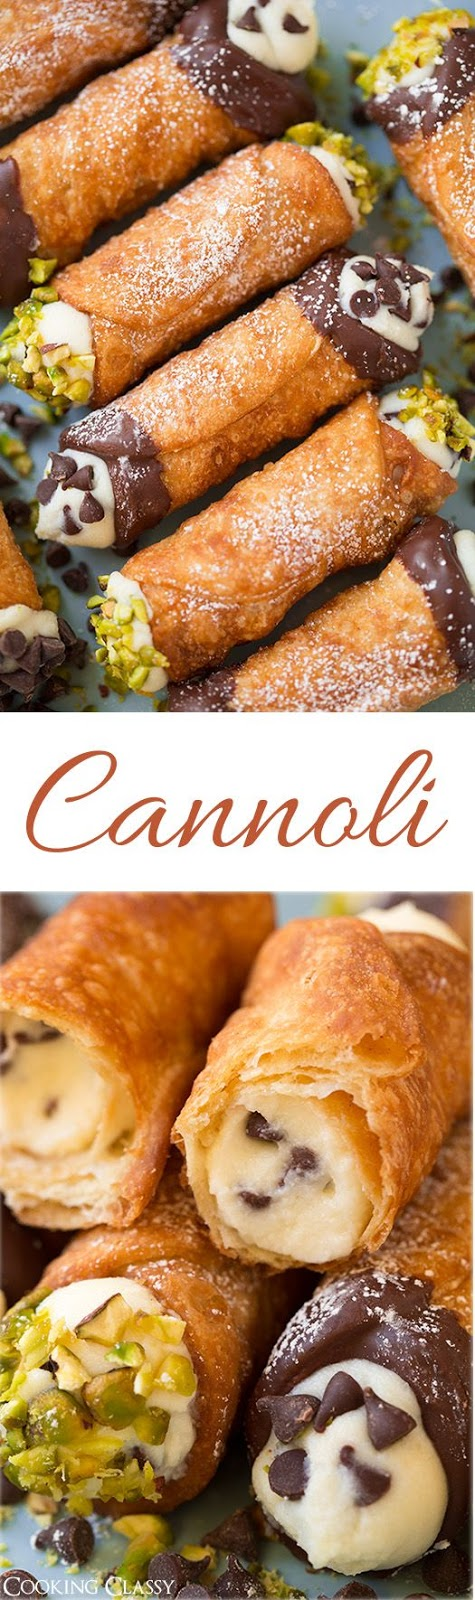 Cannoli (Shell and Filling Recipes)